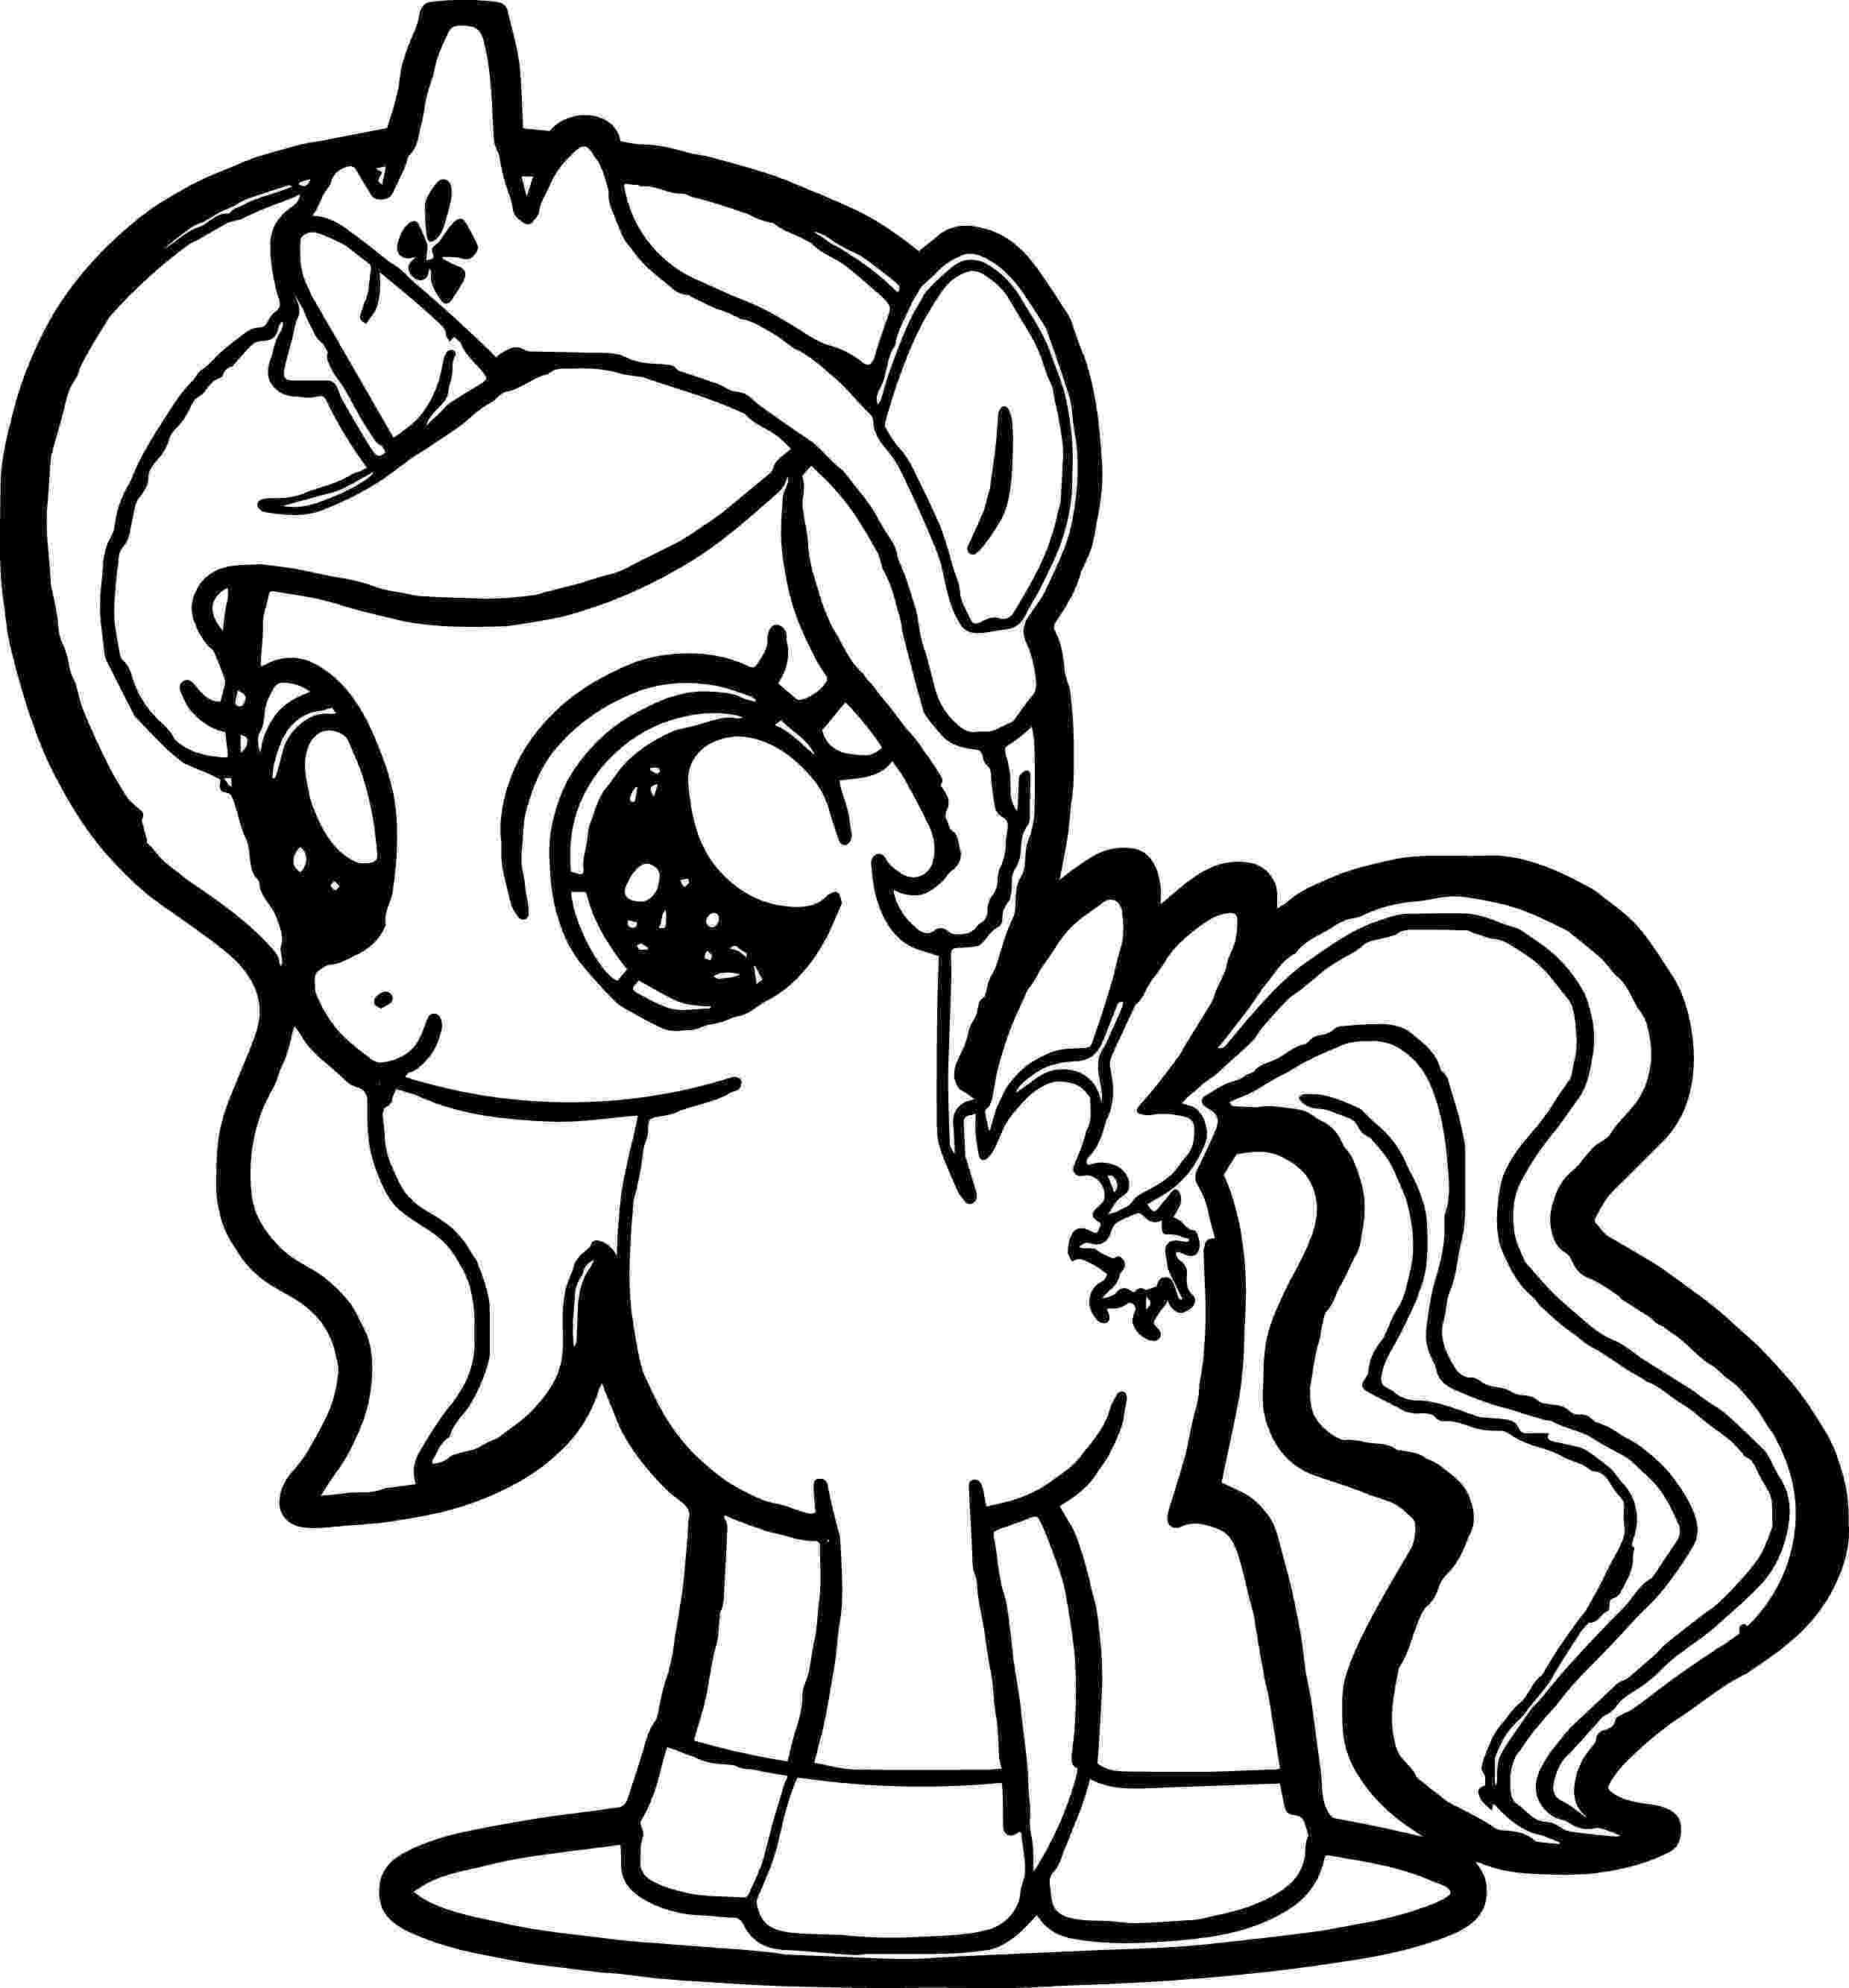 filly coloring pages filly 36 ausmalbilder my little pony coloring my little pages filly coloring